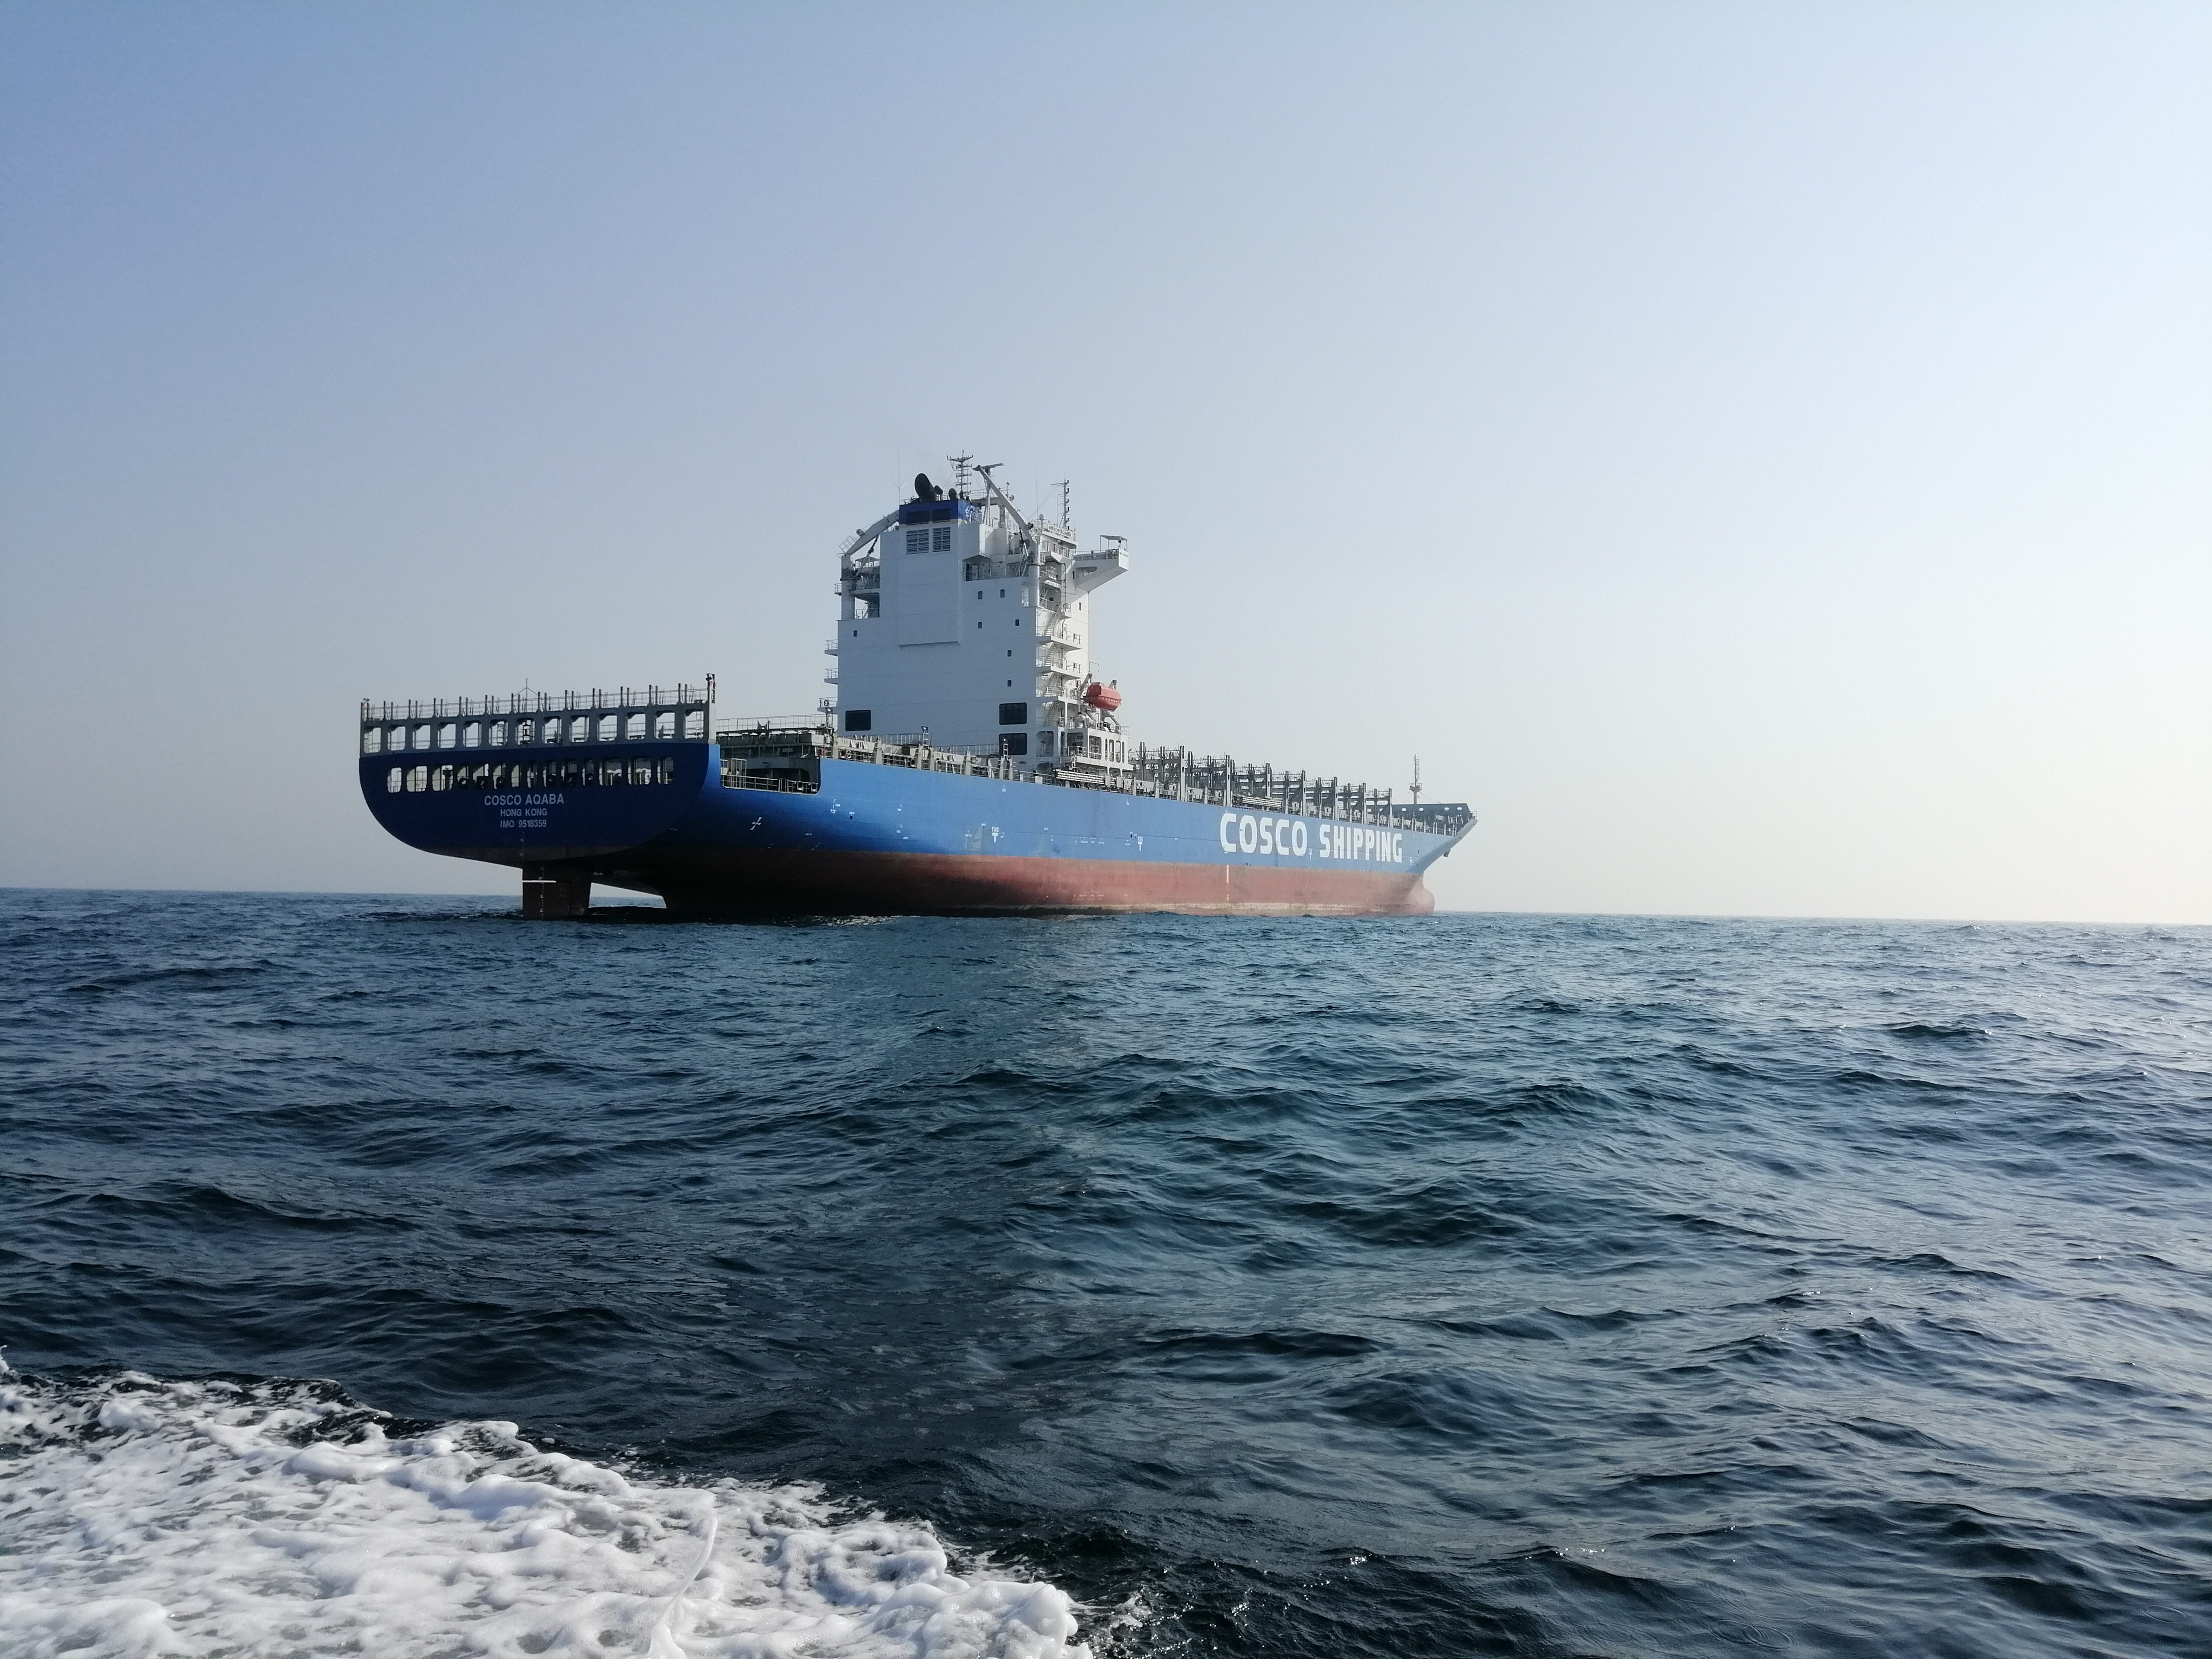 Valmet will supply exhaust gas cleaning systems (scrubber system) for ten container vessels of COSCO SHIPPING Lines Co., Ltd. The scrubber systems will be installed in existing vessels in China in 2019. The project is executed in co-operation with Health Lead Development Ltd.